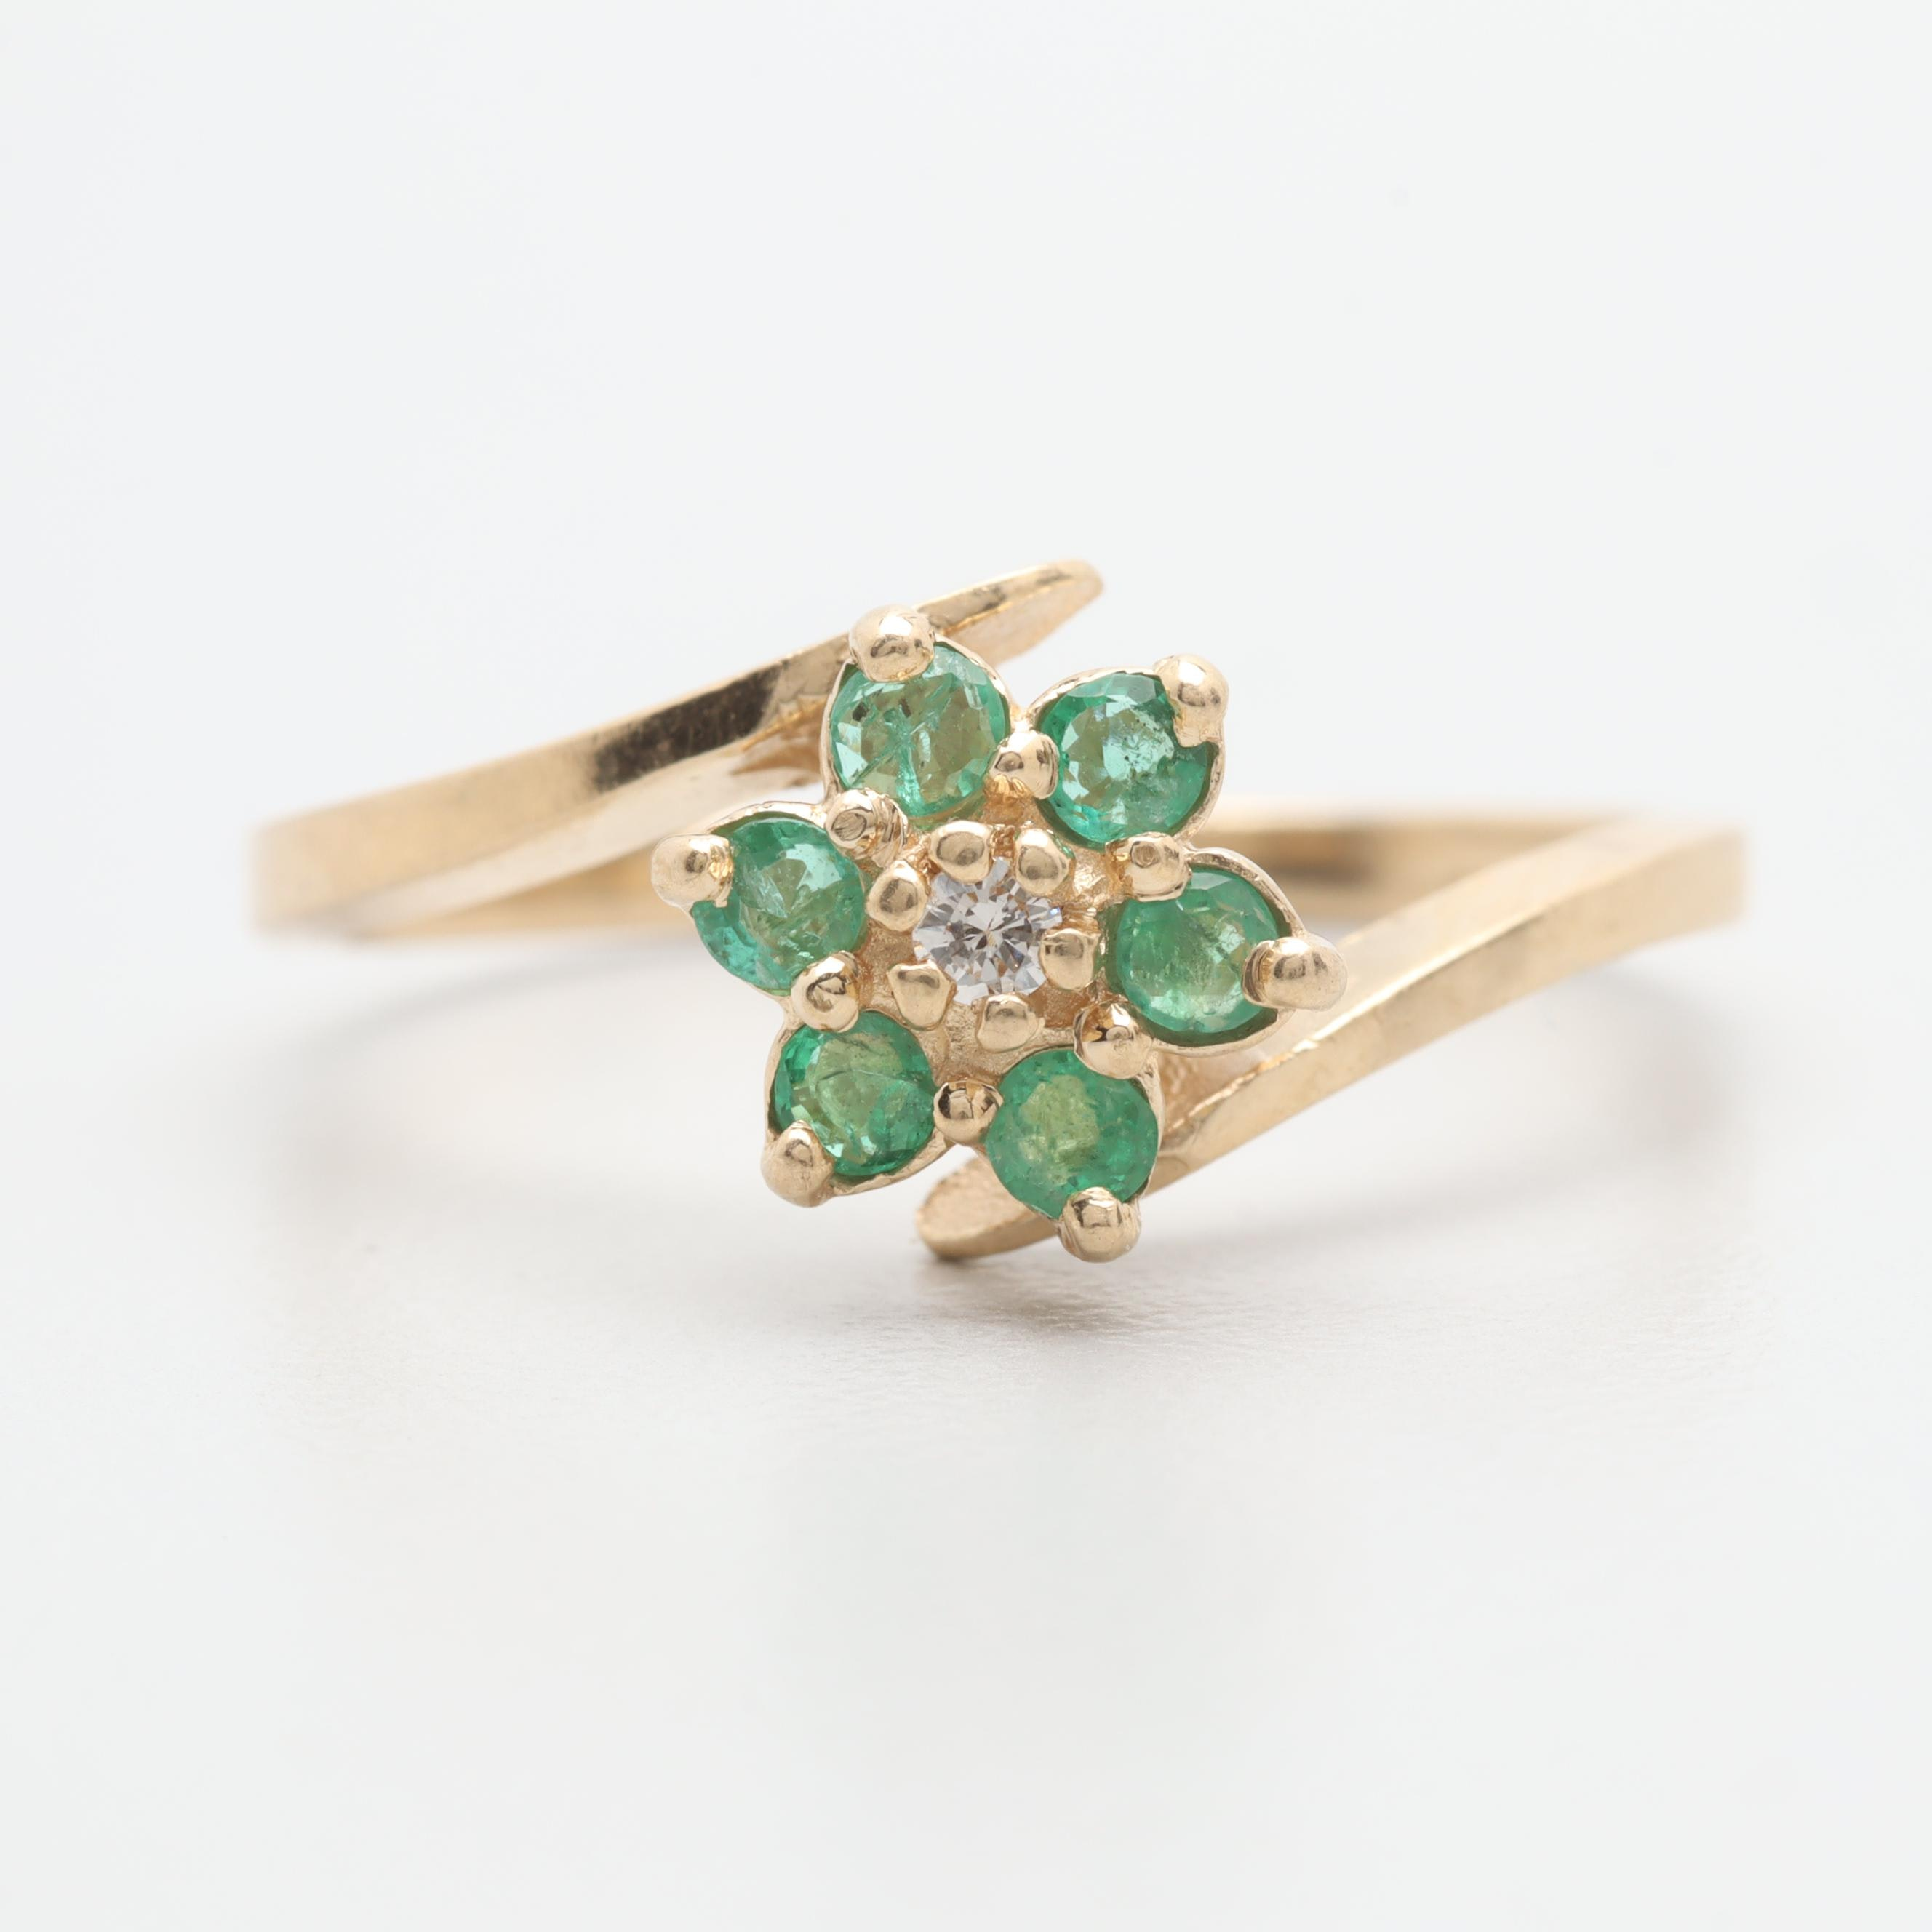 14K Yellow Gold Diamond and Emerald Floral Bypass Ring